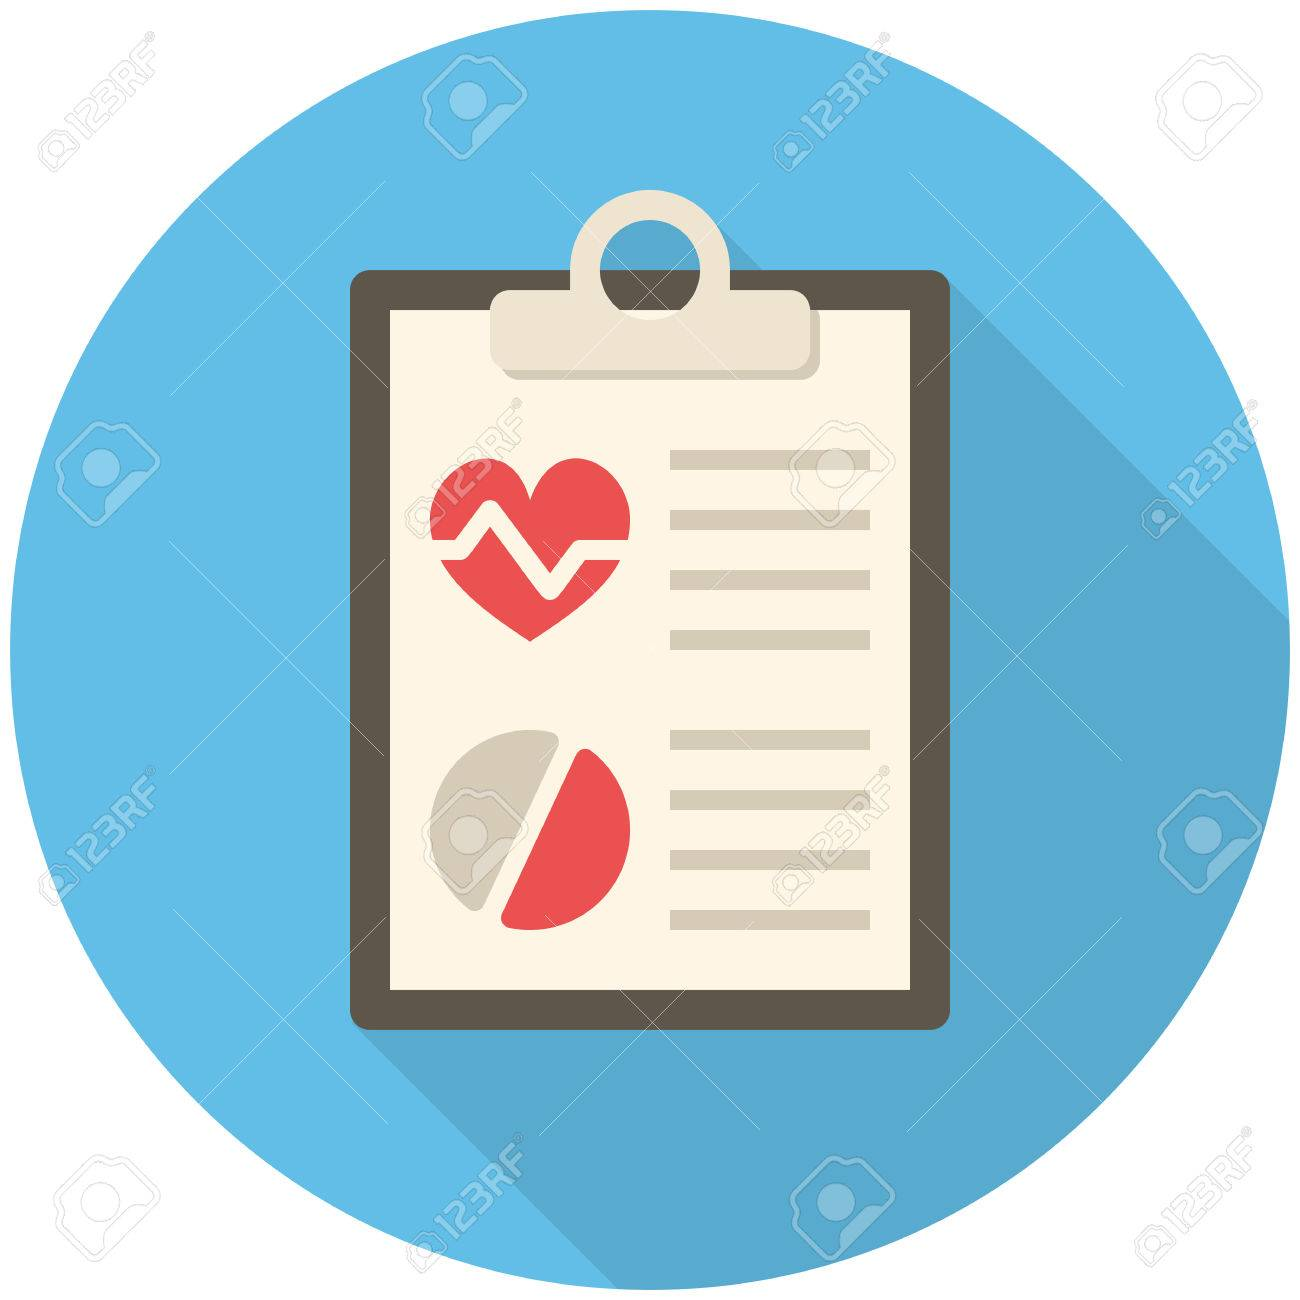 medical report modern flat icon with long shadow royalty free